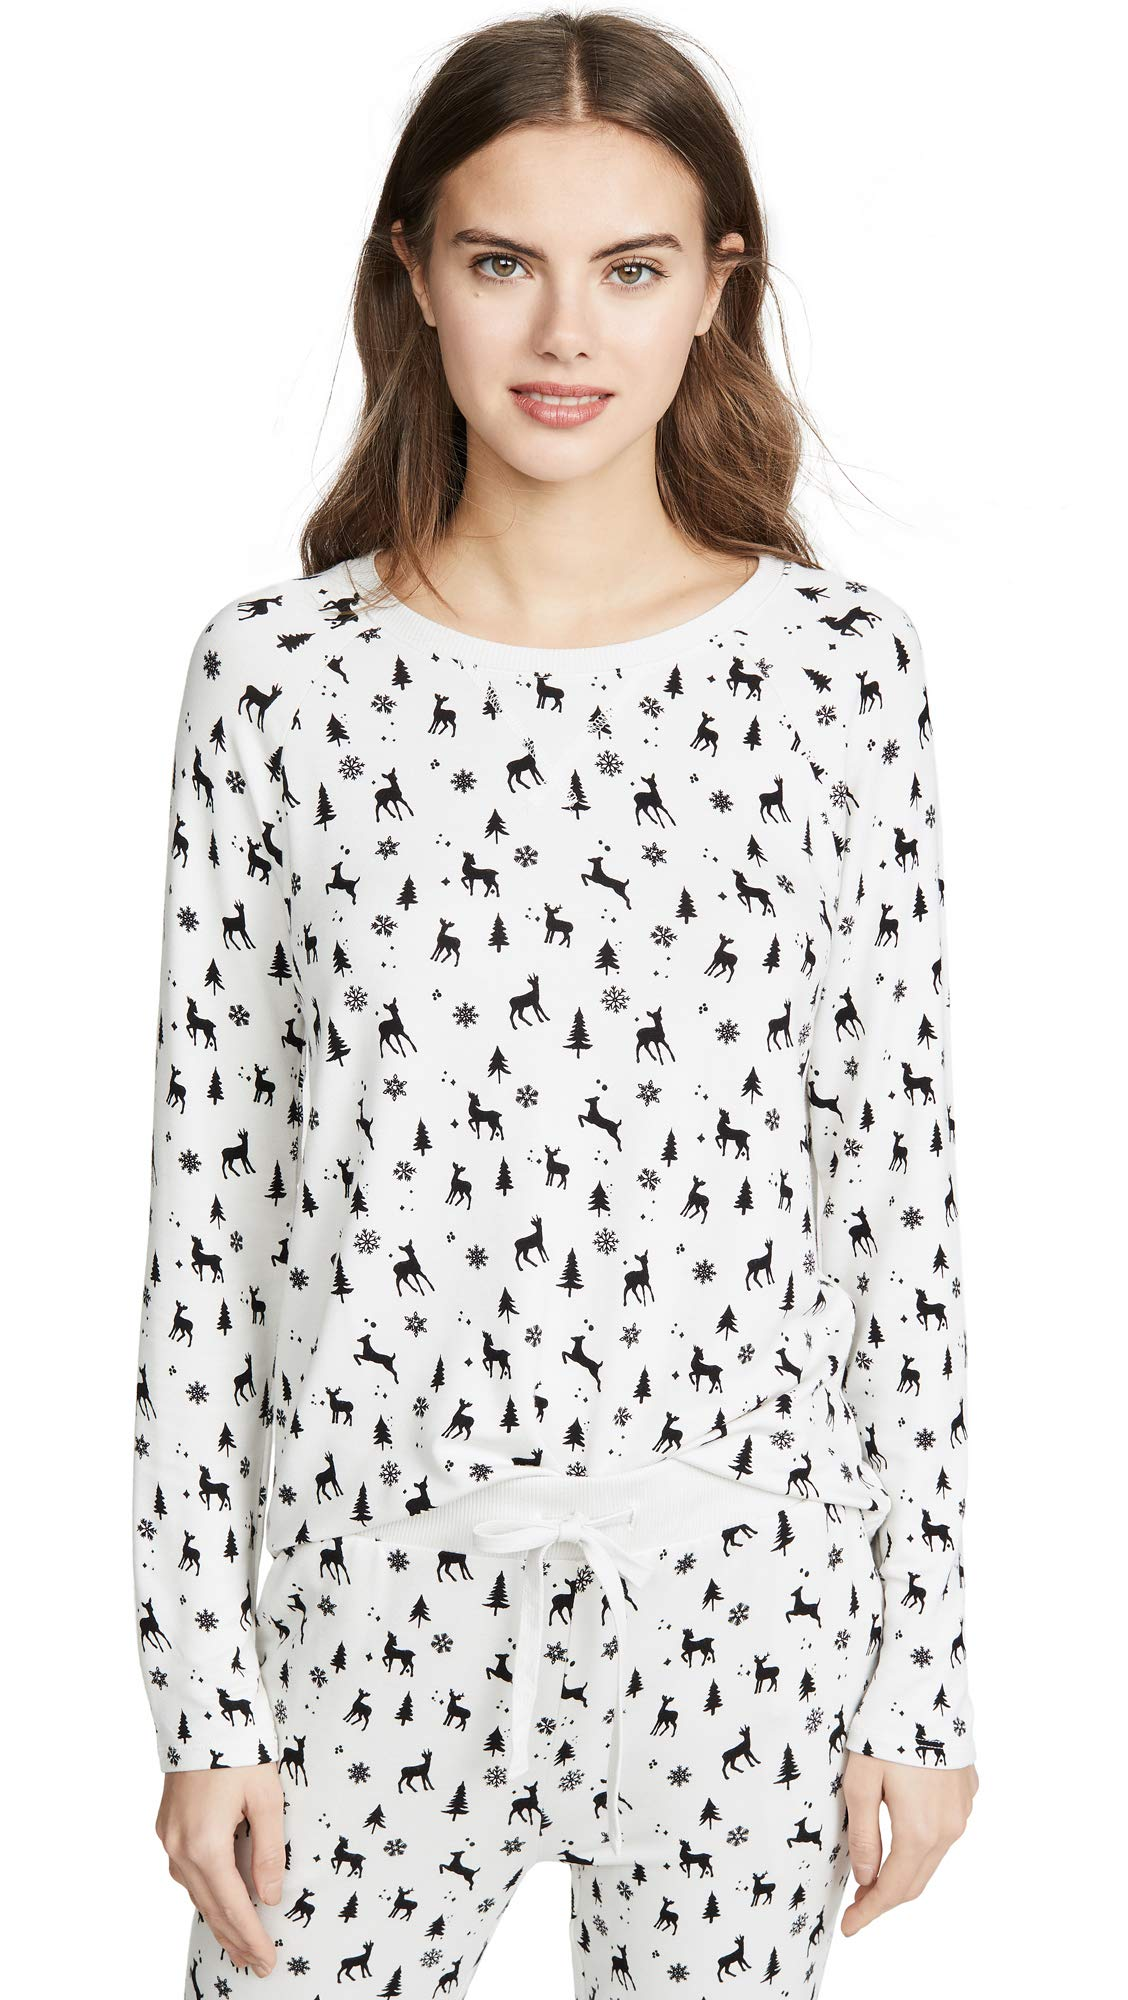 Z SUPPLY Women's The Woodland Long Sleeve Top